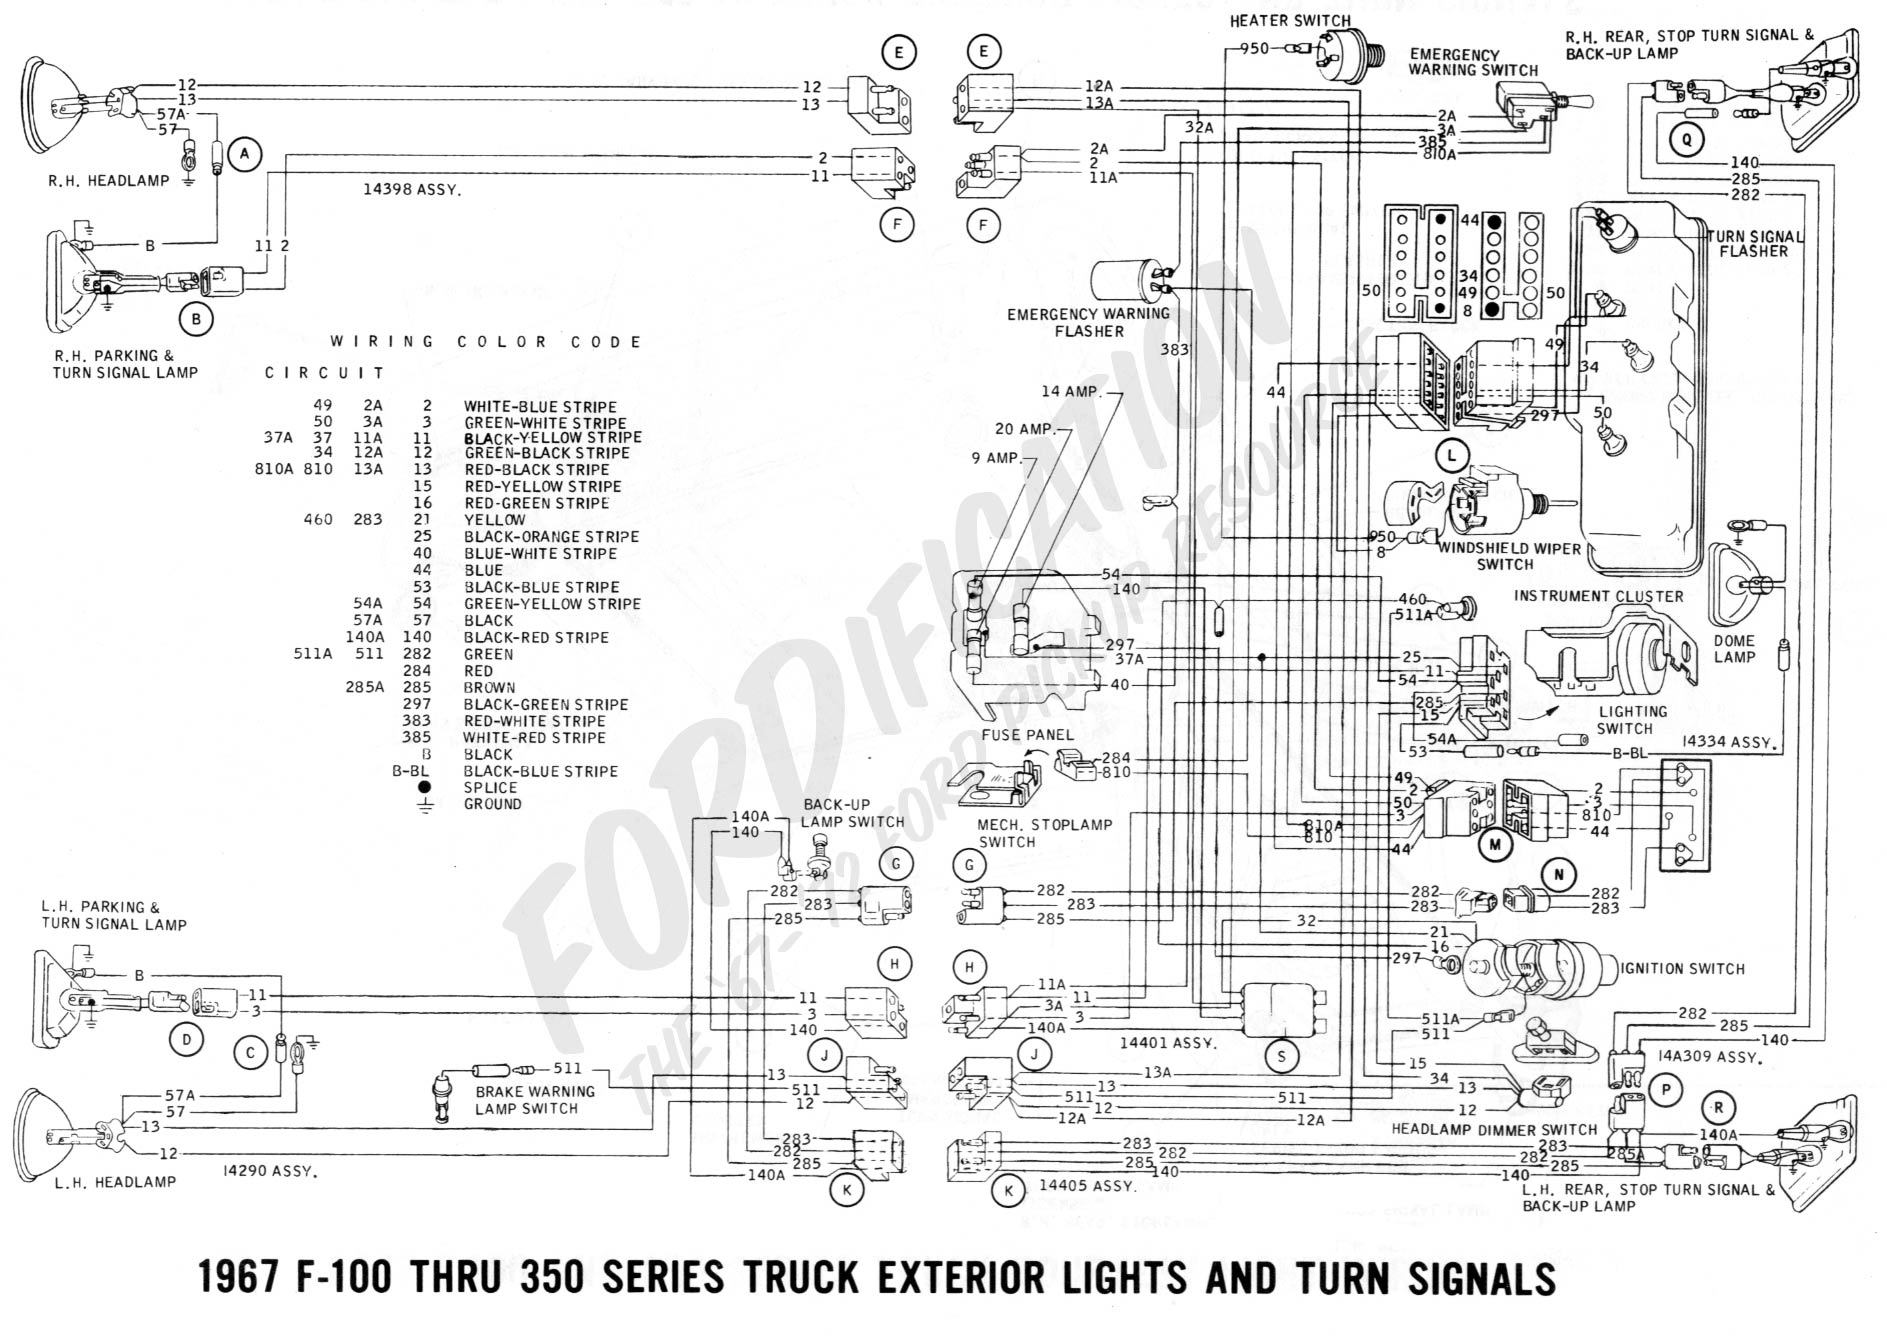 80 1967_exterior_lights_and_turn_signals_page_2_1db6c529c4c9567560e56d6320f993290ba5b803 1967 mustang wiring diagram efcaviation com 1968 mustang turn signal wiring diagram at edmiracle.co